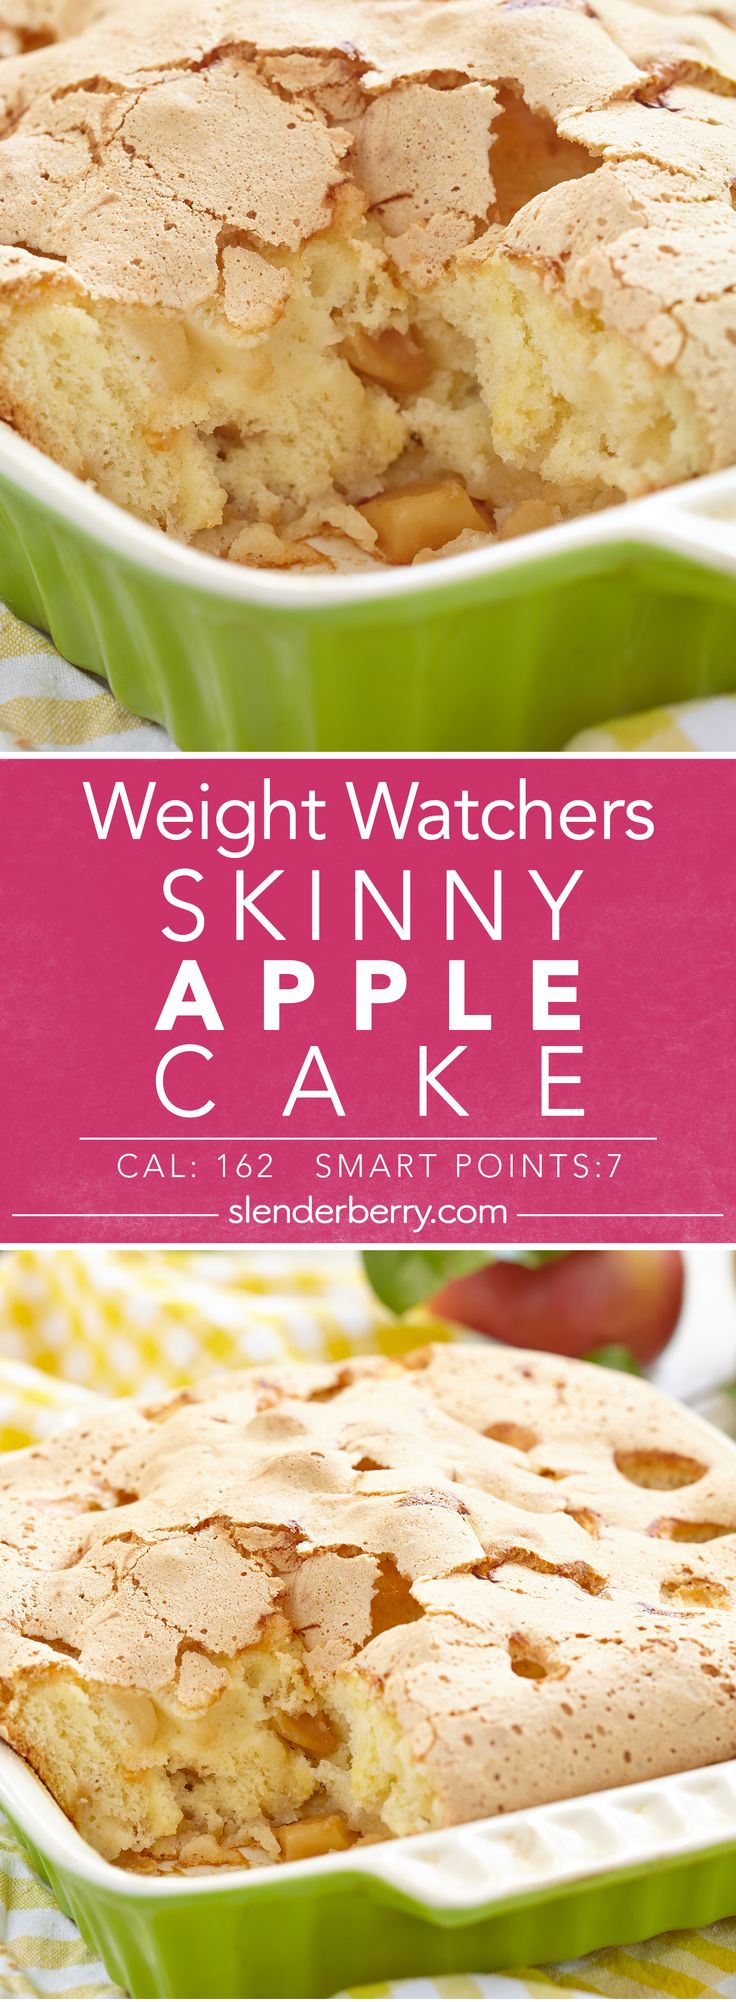 Weight Watchers Skinny Apple Cake Recipe -  7 Smart Points 162 Calories